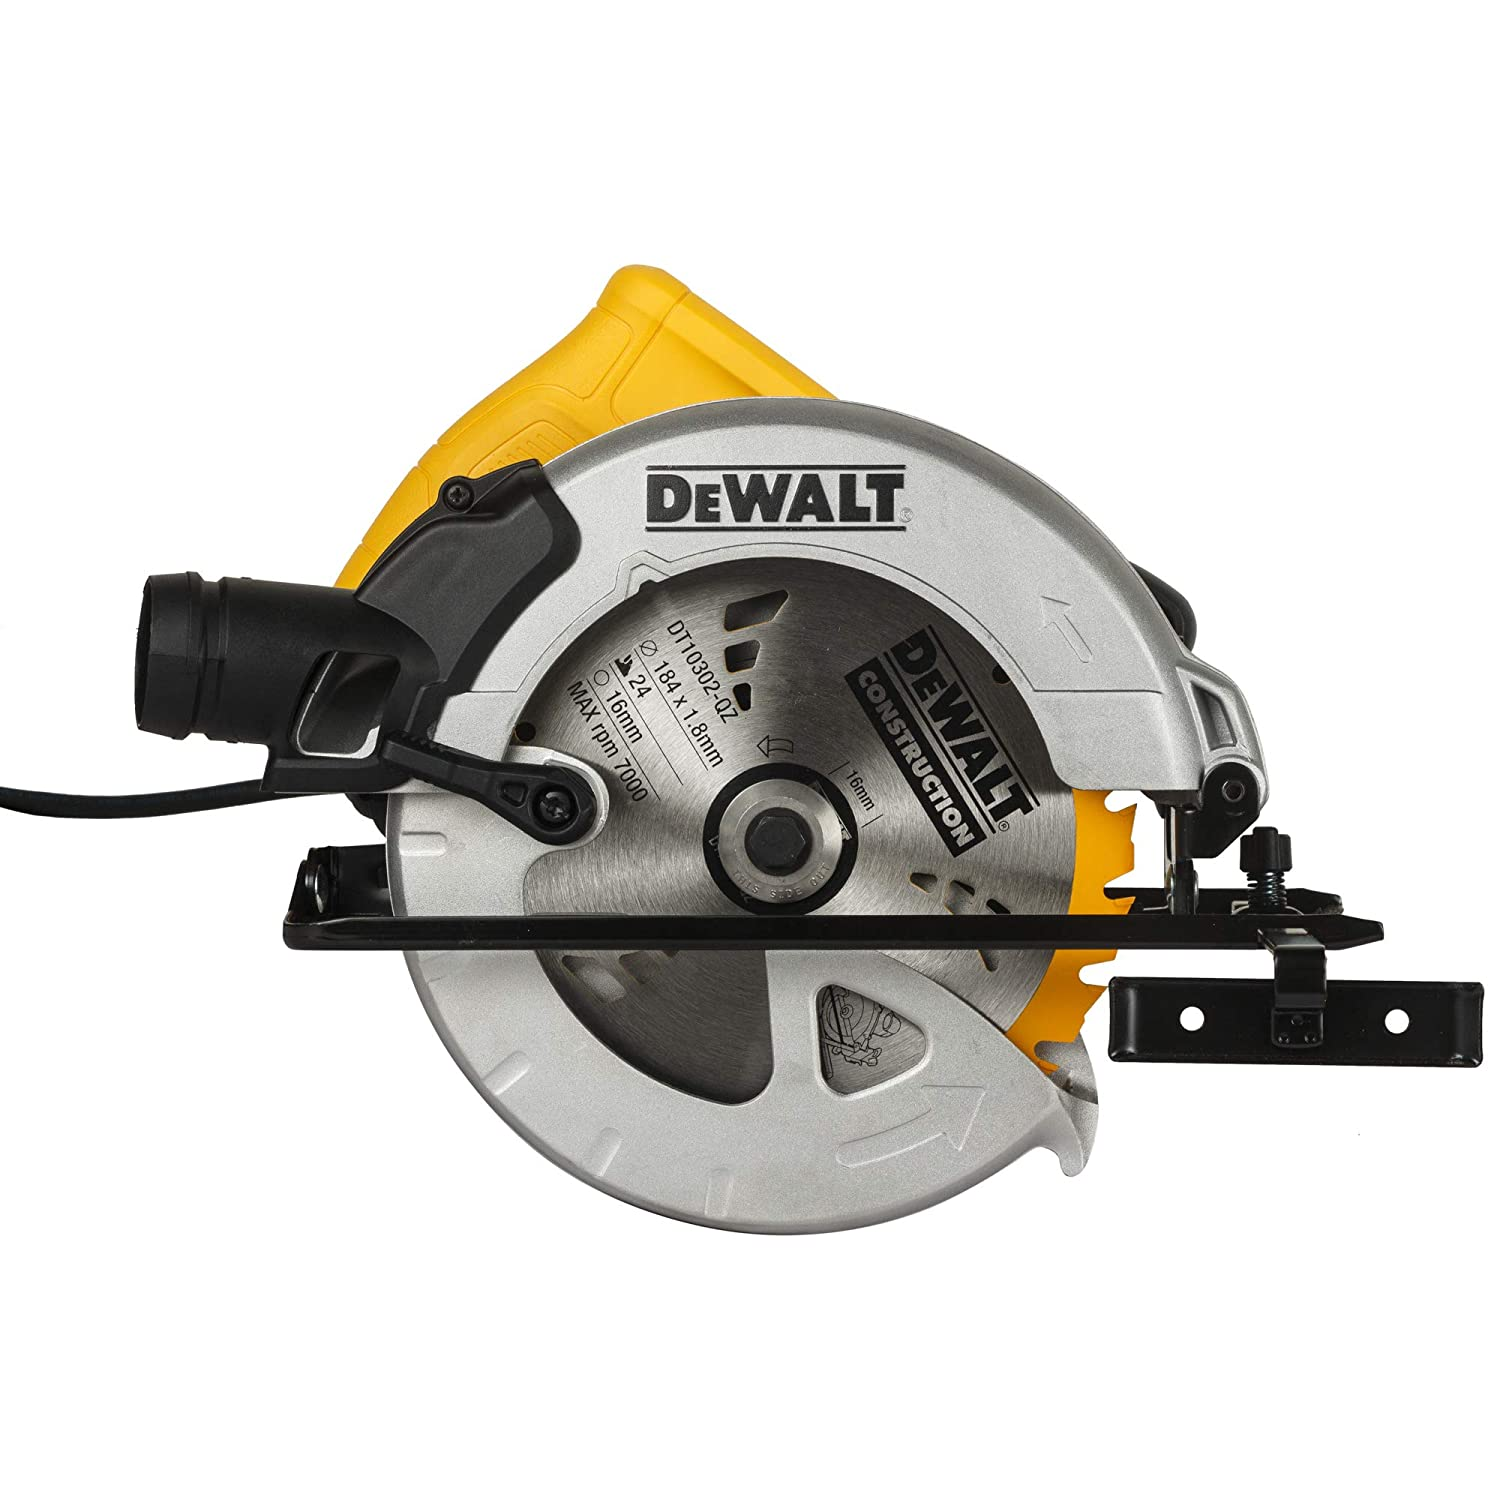 1350W, 185mm, Compact Circular Saw with DT1151 wheel